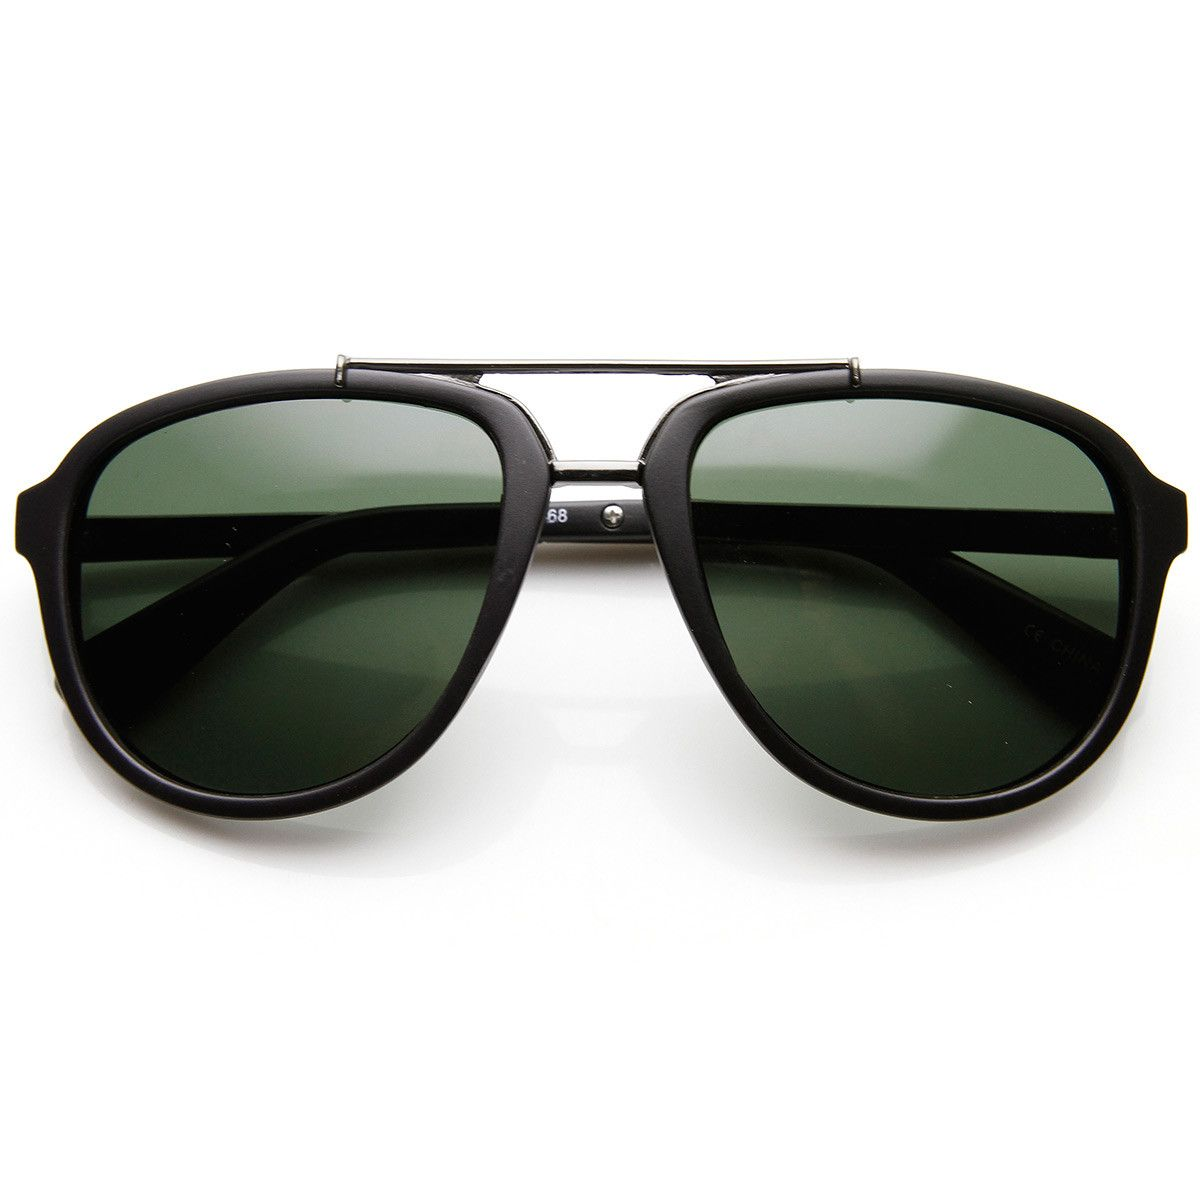 3f7e55feec90d Retro Dapper Euro Fashion Roadster Square Aviator Sunglasses   Pinterest